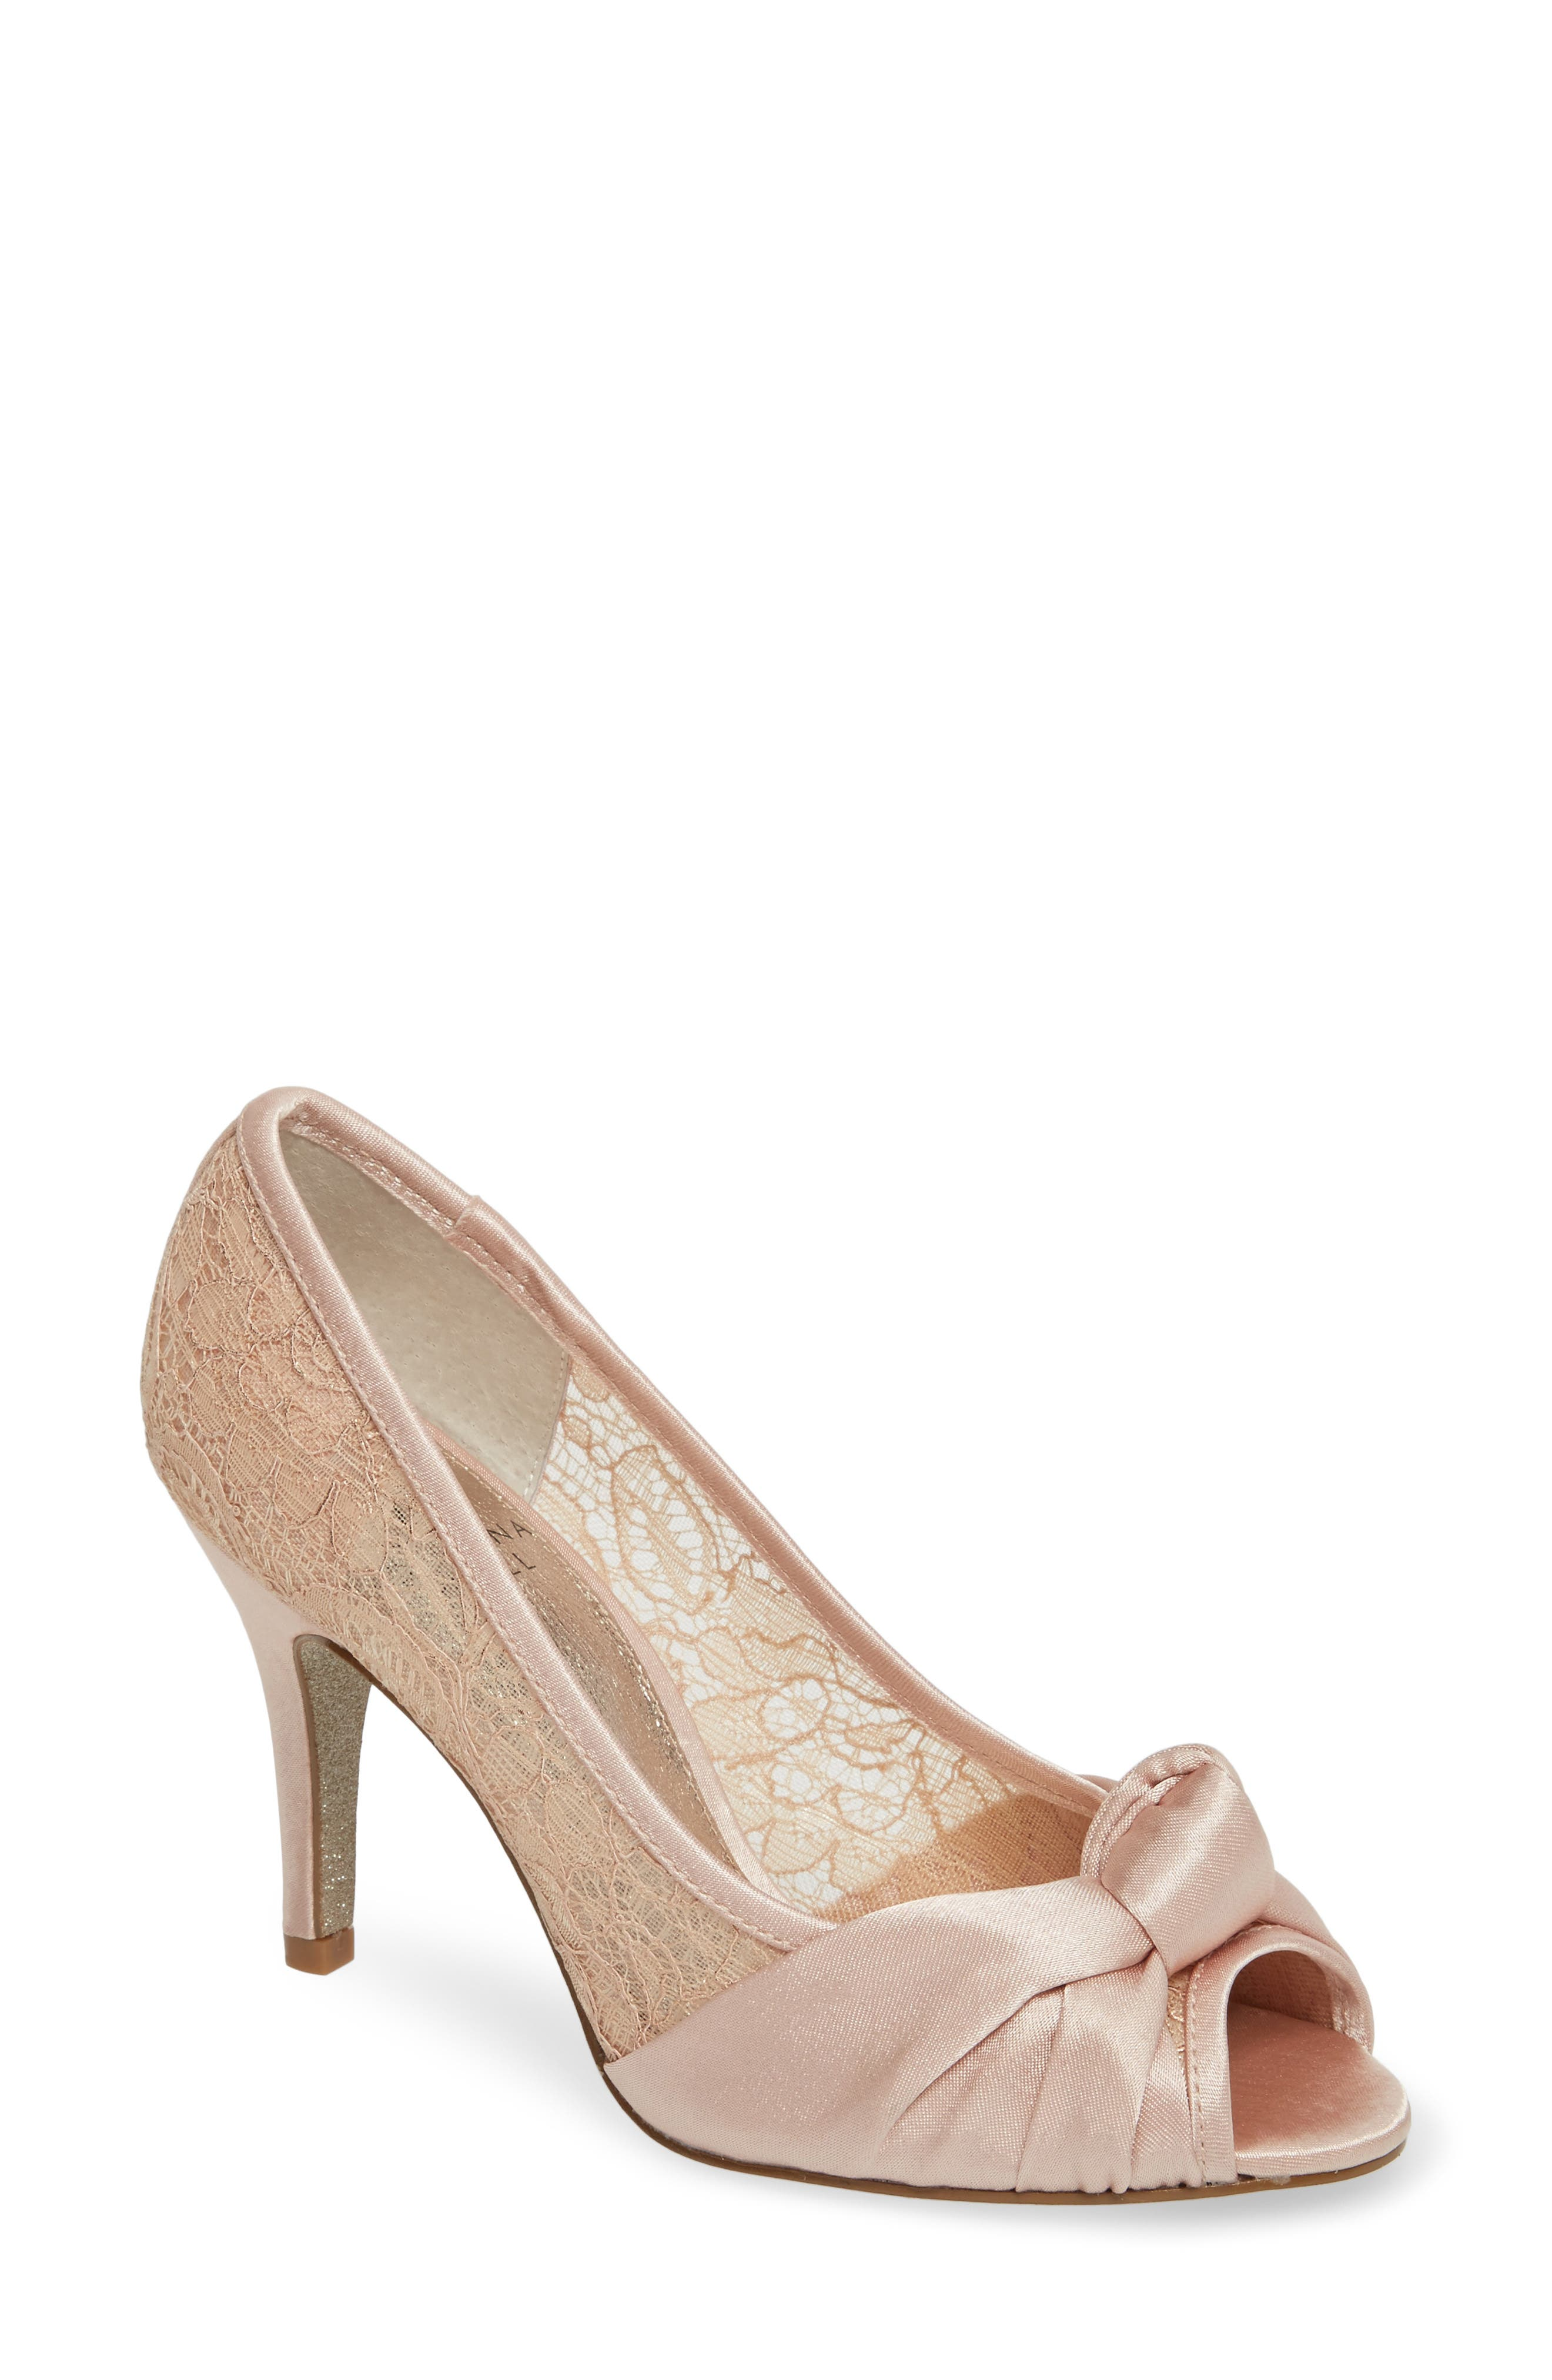 Alternate Image 1 Selected - Adrianna Papell Francesca Knotted Peep Toe Pump (Women)